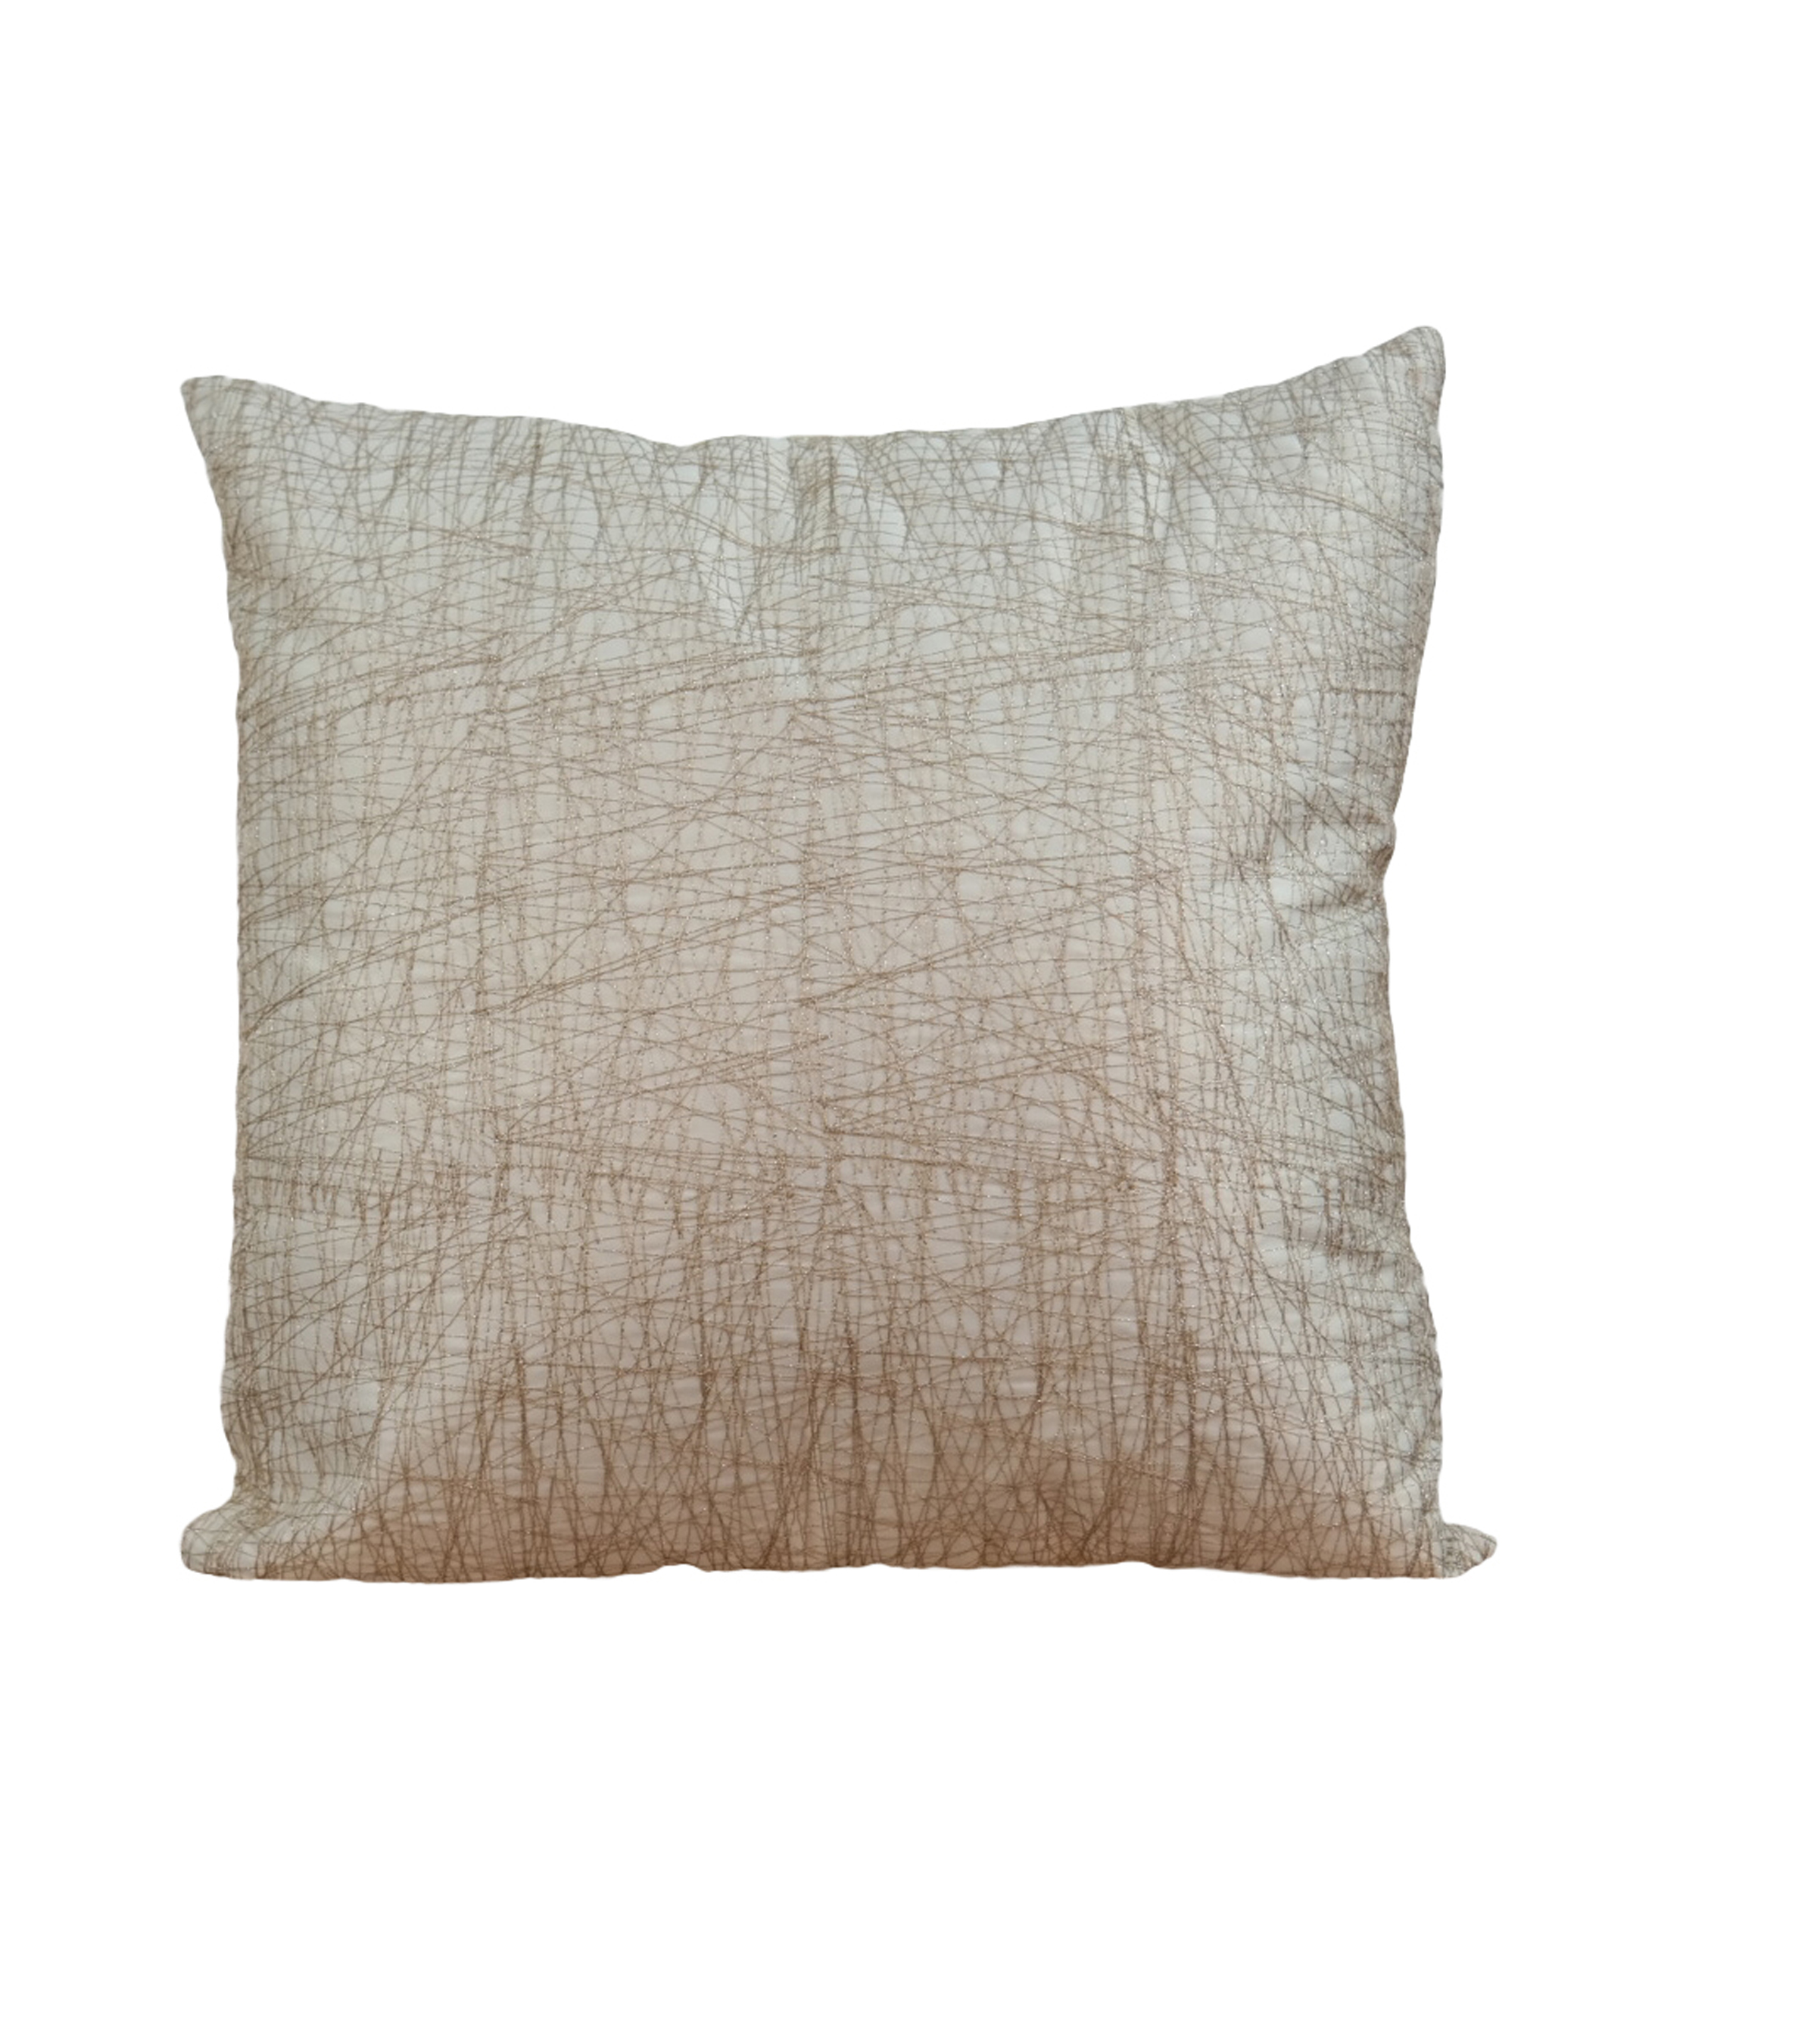 'Ivory stitch' cushion